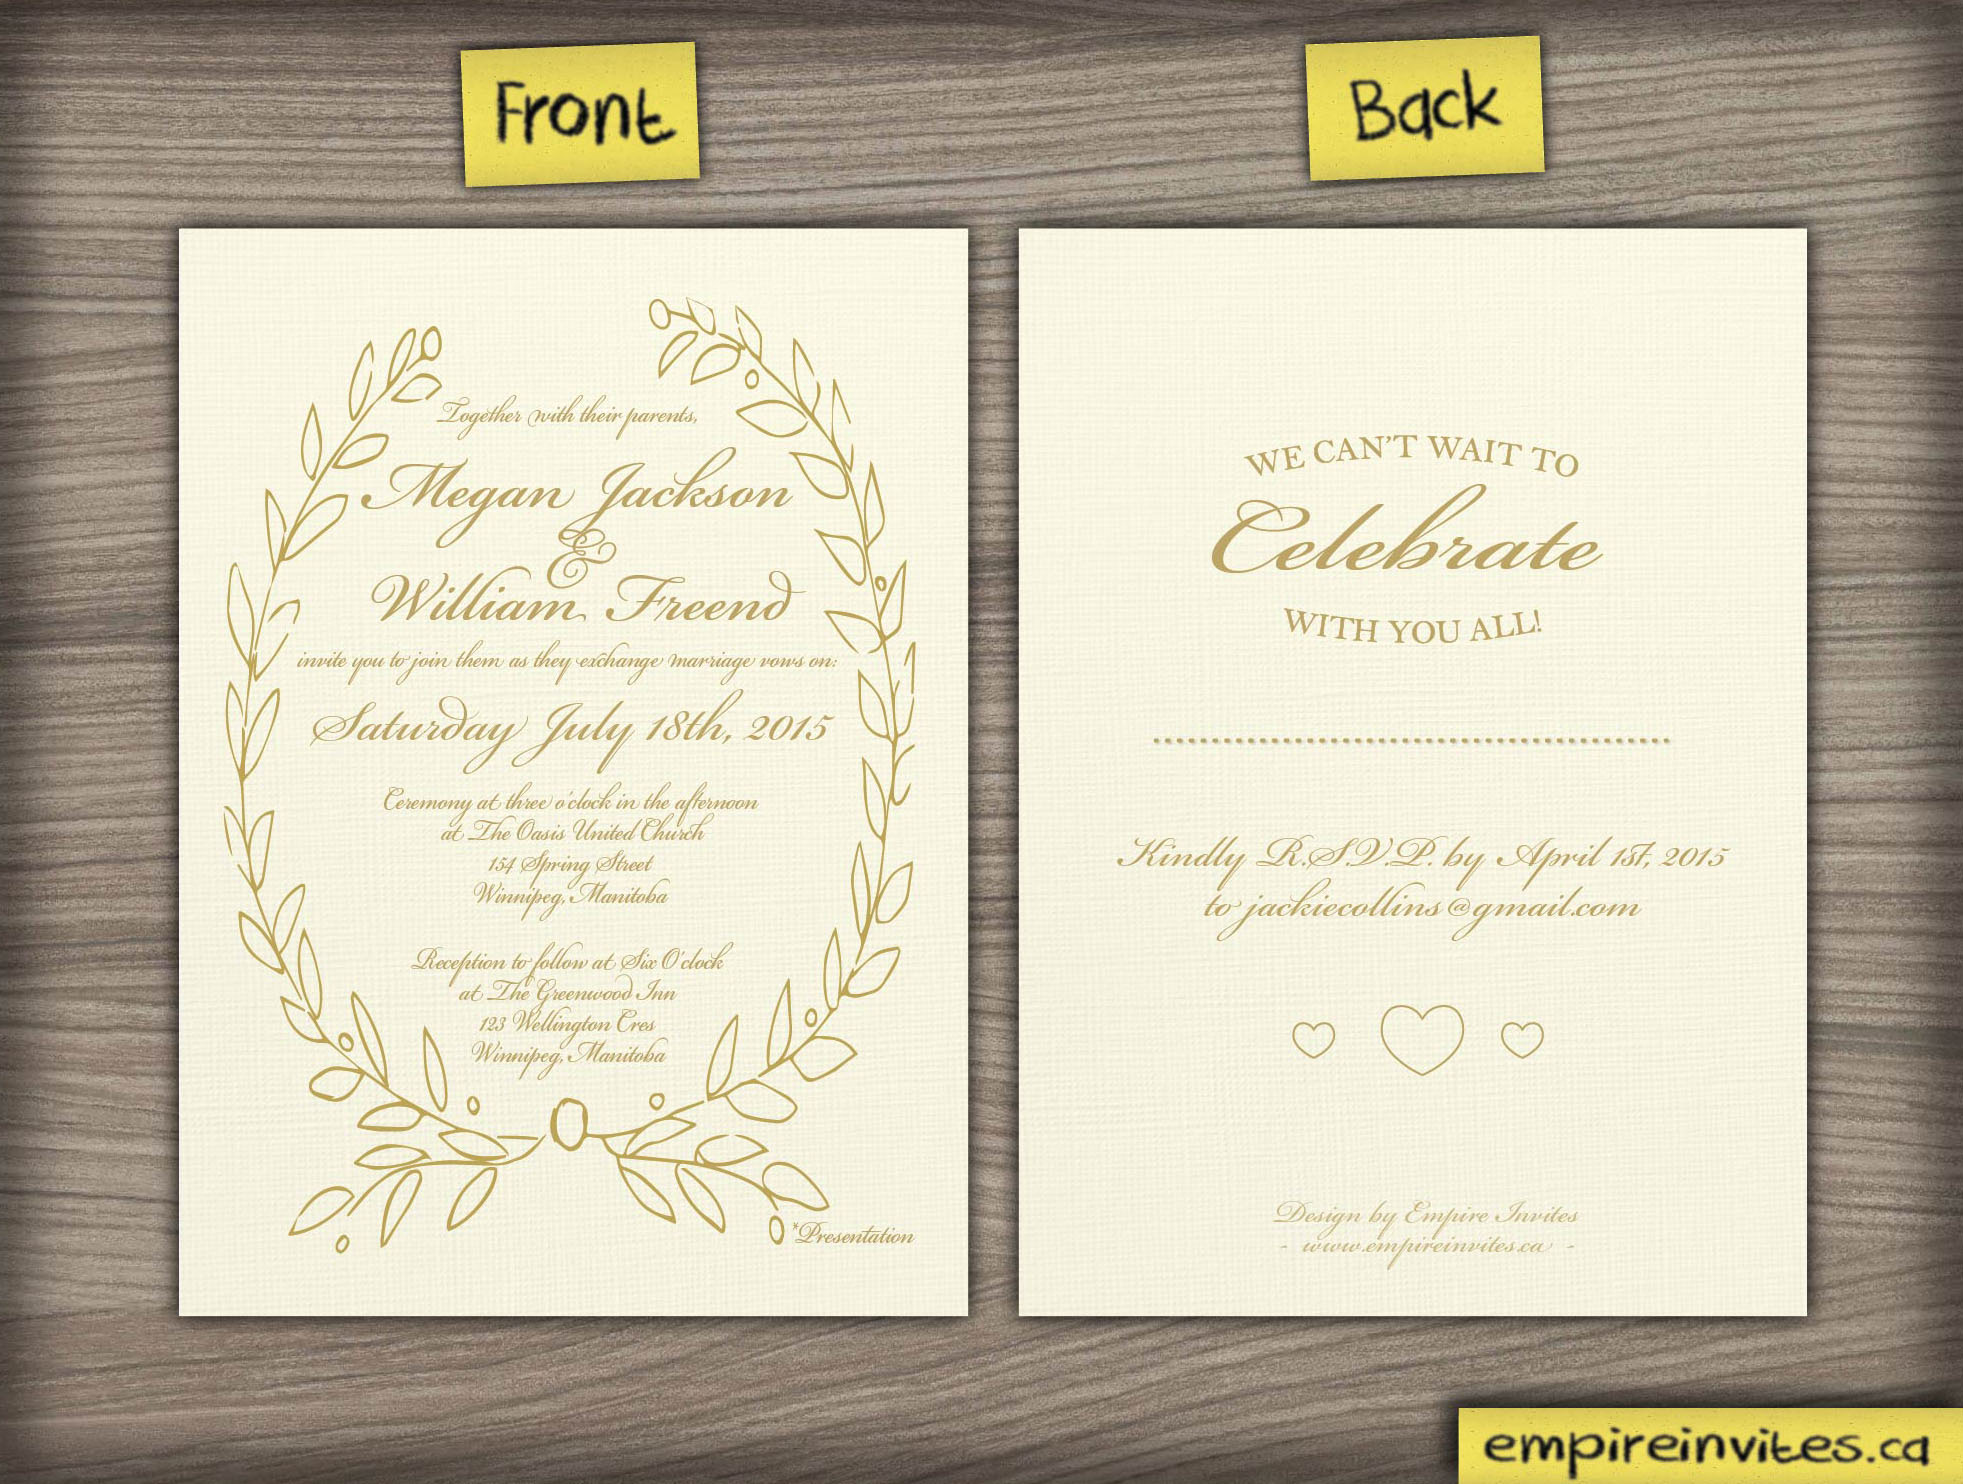 Custom greek style wedding invitation Canada Empire Invites